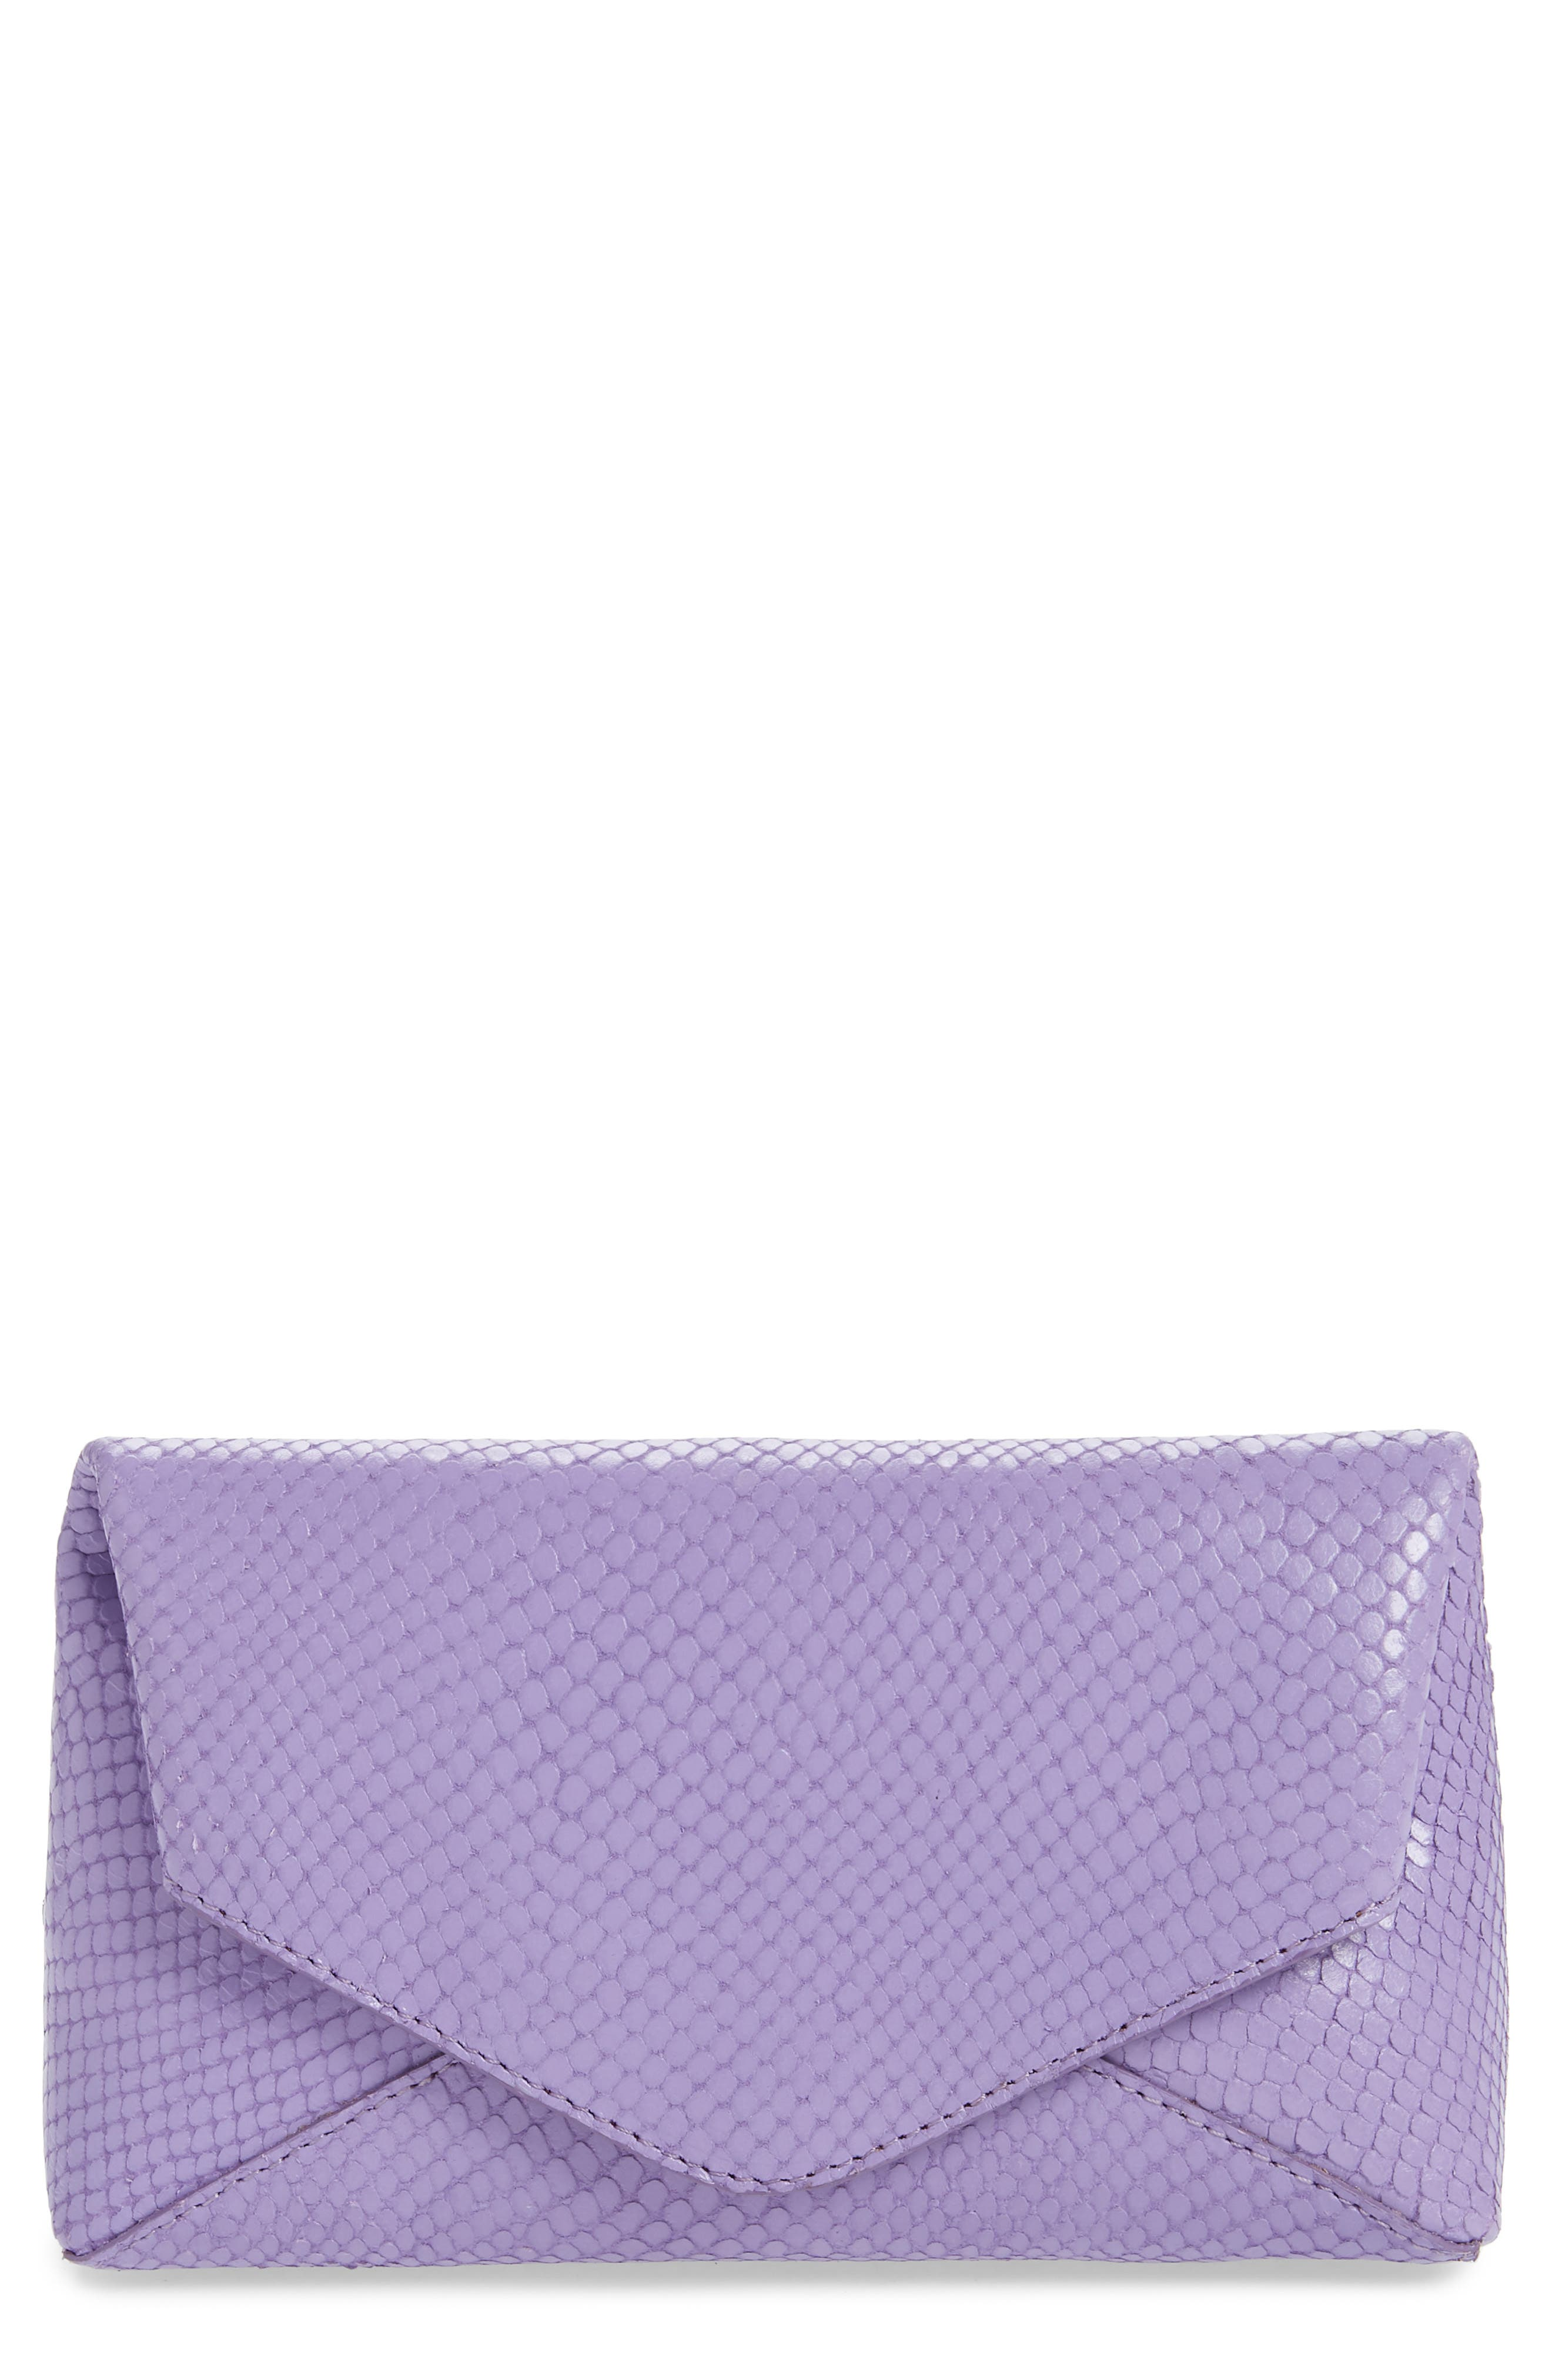 Small Python Embossed Leather Envelope Clutch, Main, color, LILAC